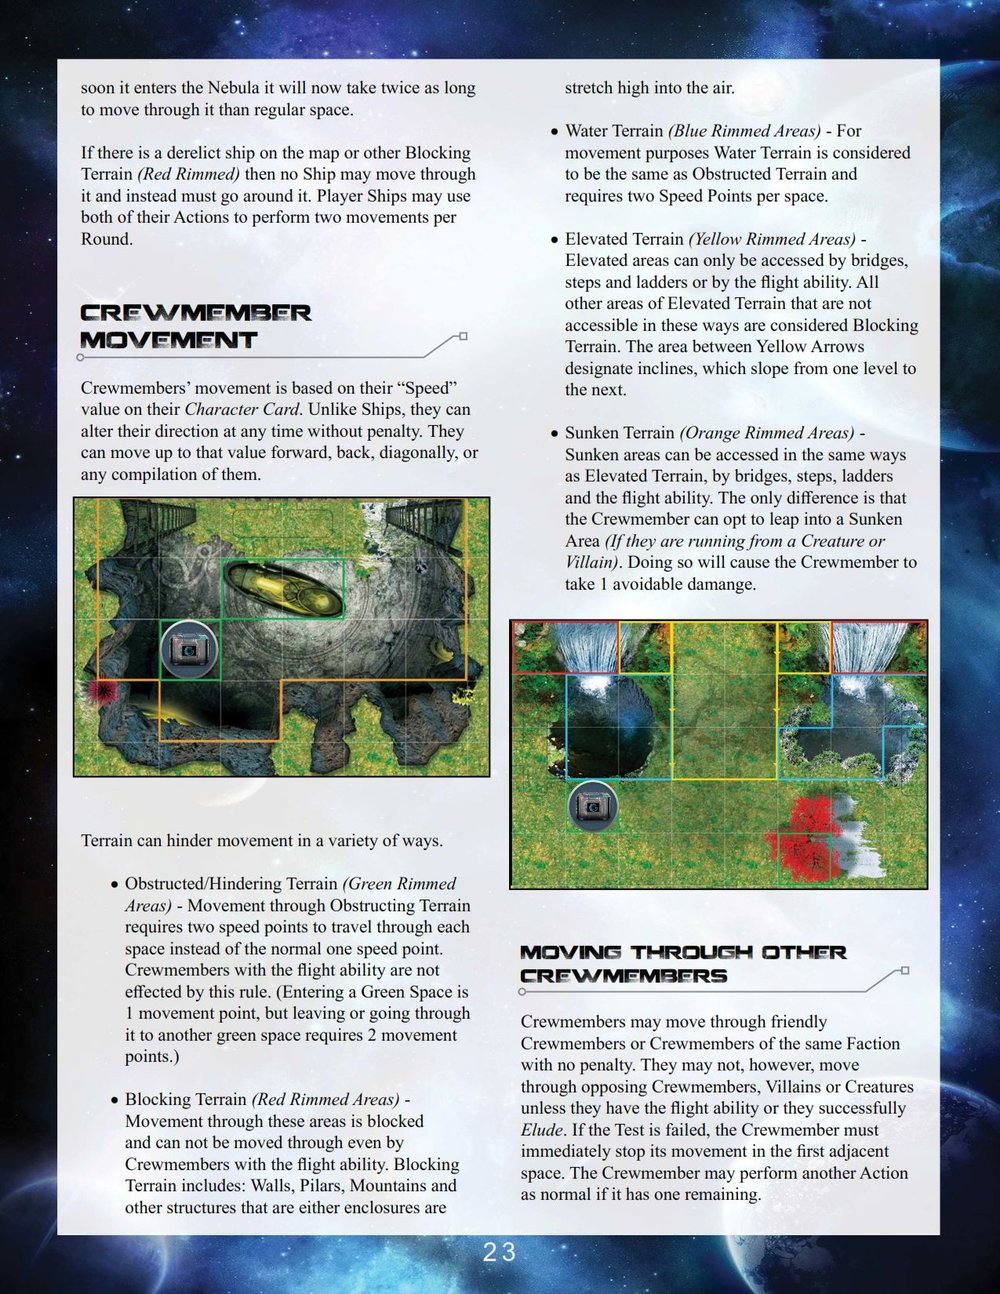 Renegades_Rule_Book_024.jpg